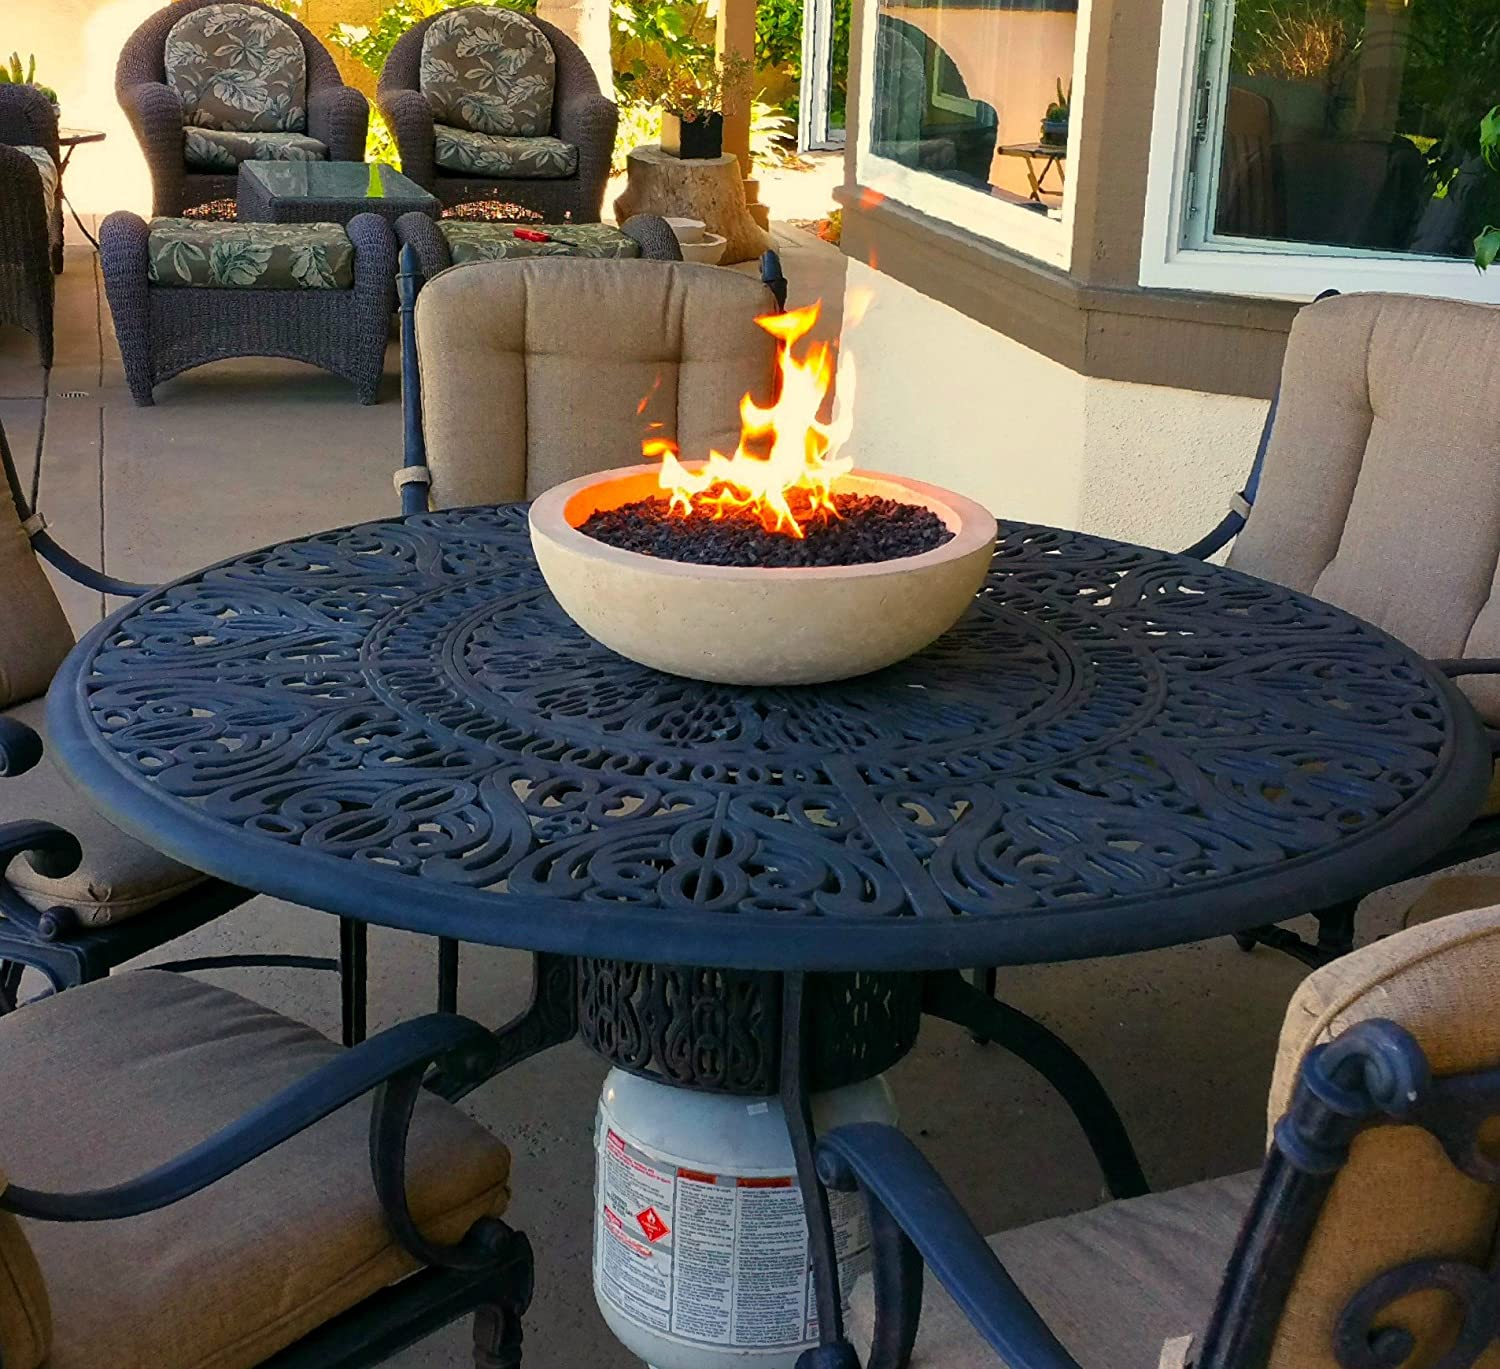 amazon com a fire pit for your patio table landscape quality rh amazon com patio tabletop fire bowl patio table fire pit costco